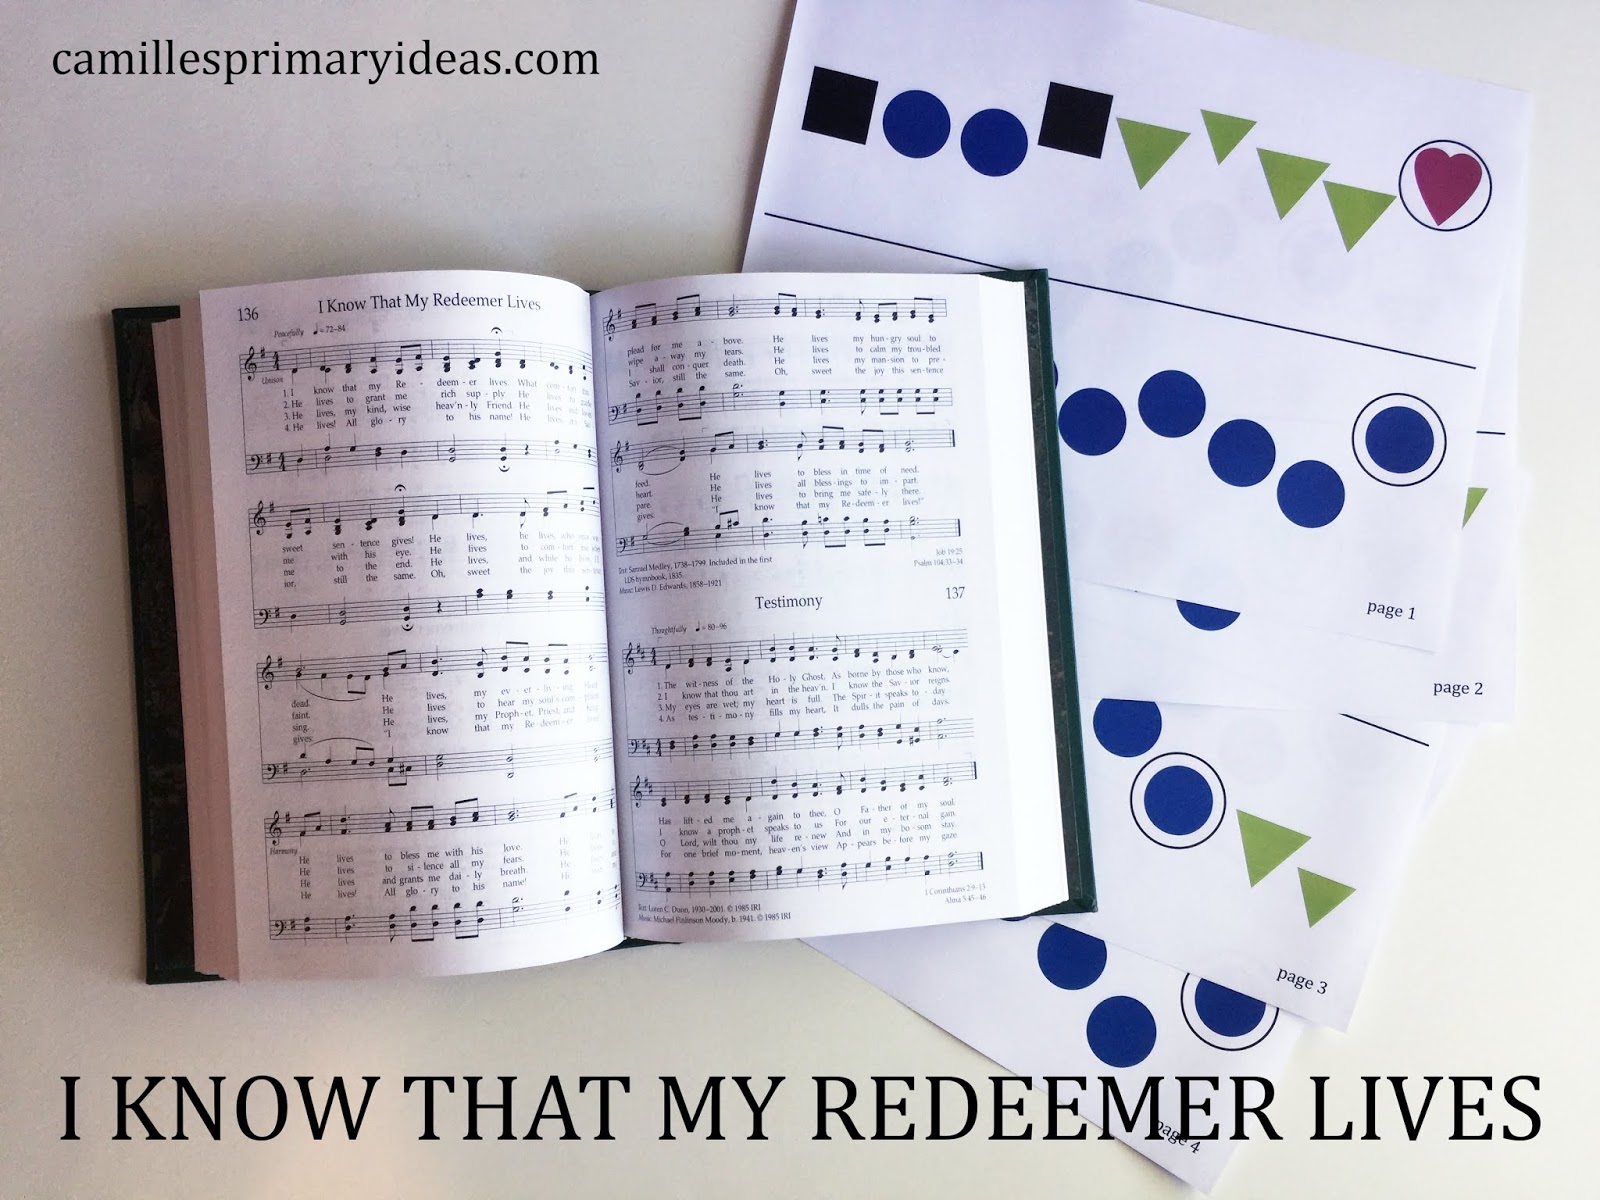 Camille's Primary Ideas: I Know That My Redeemer Lives singing time lesson plan idea